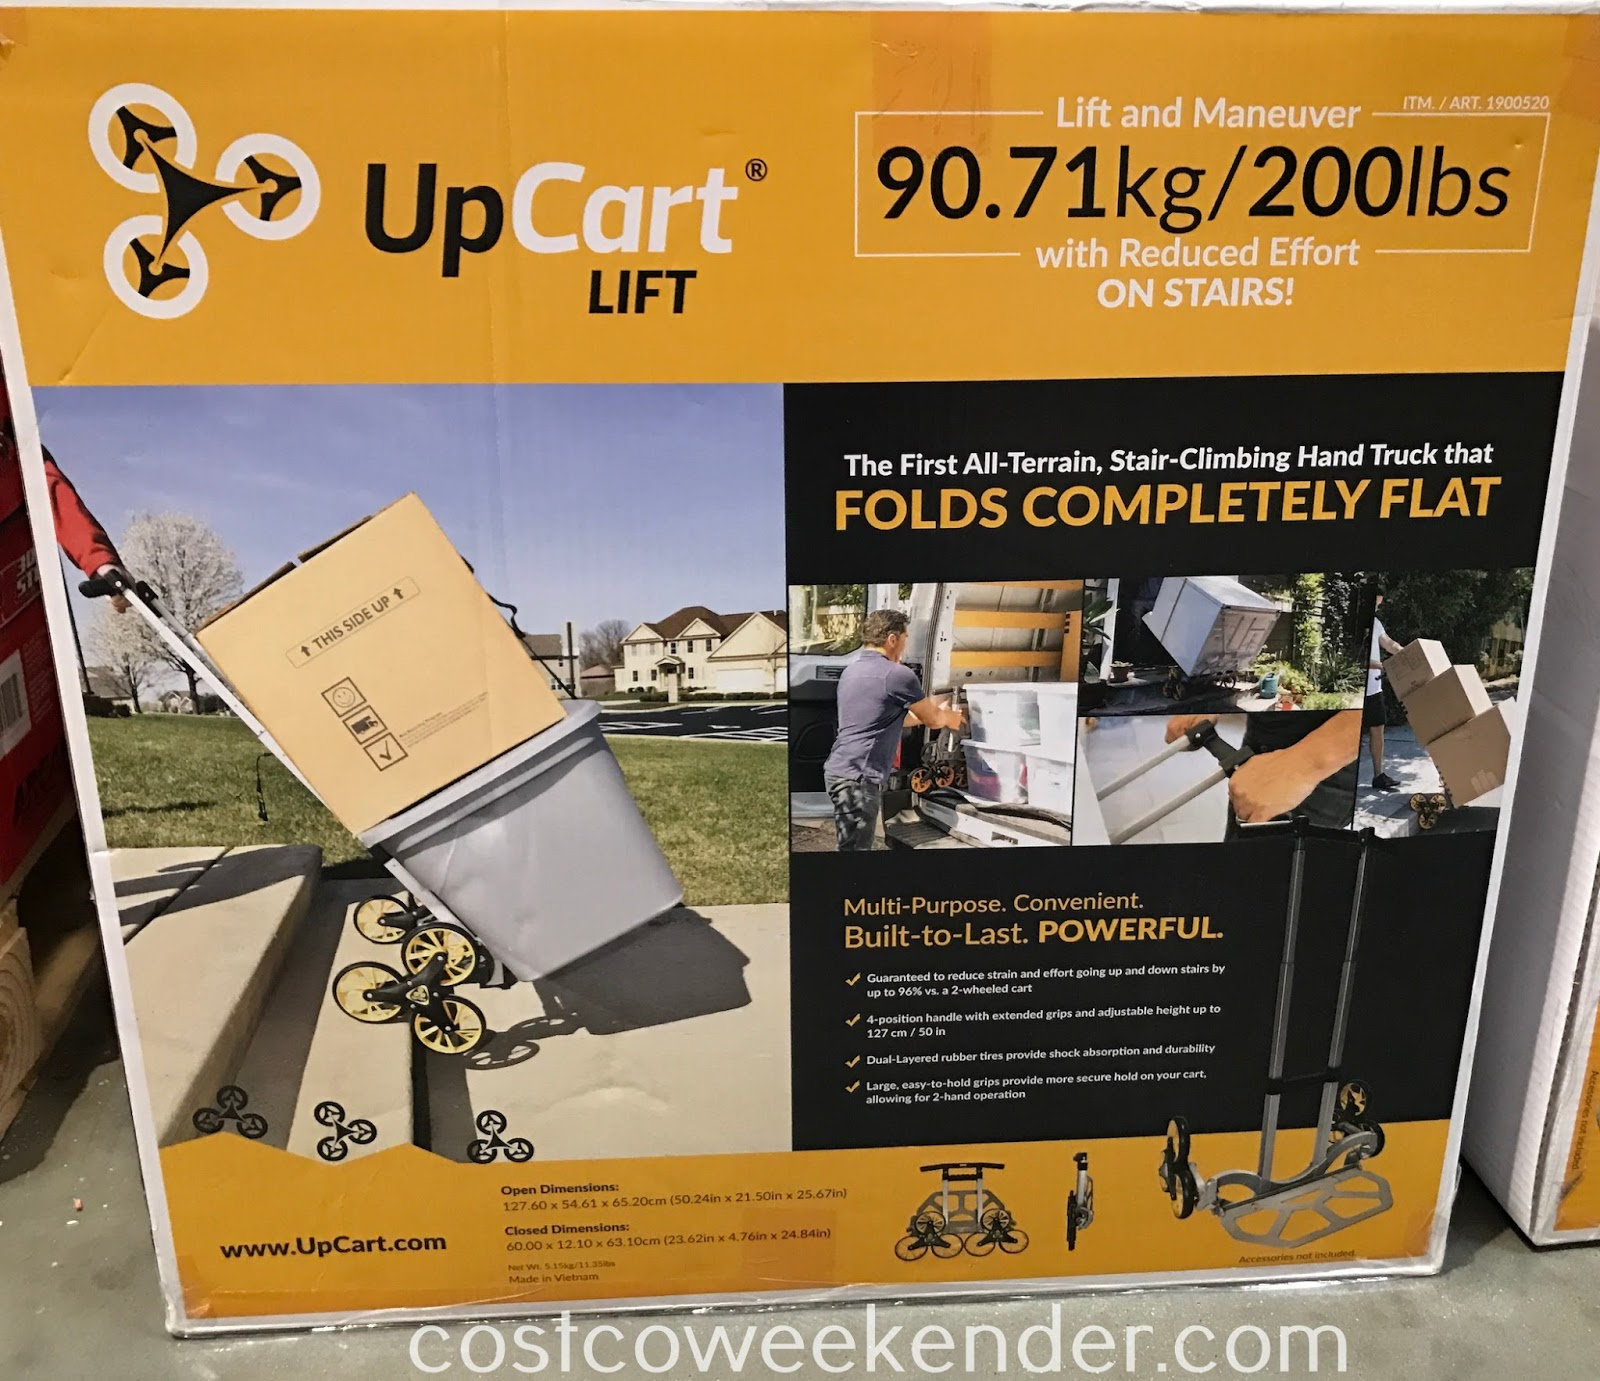 Easily move heavy items with the UpCart Lift Stair-Climbing Hand Truck